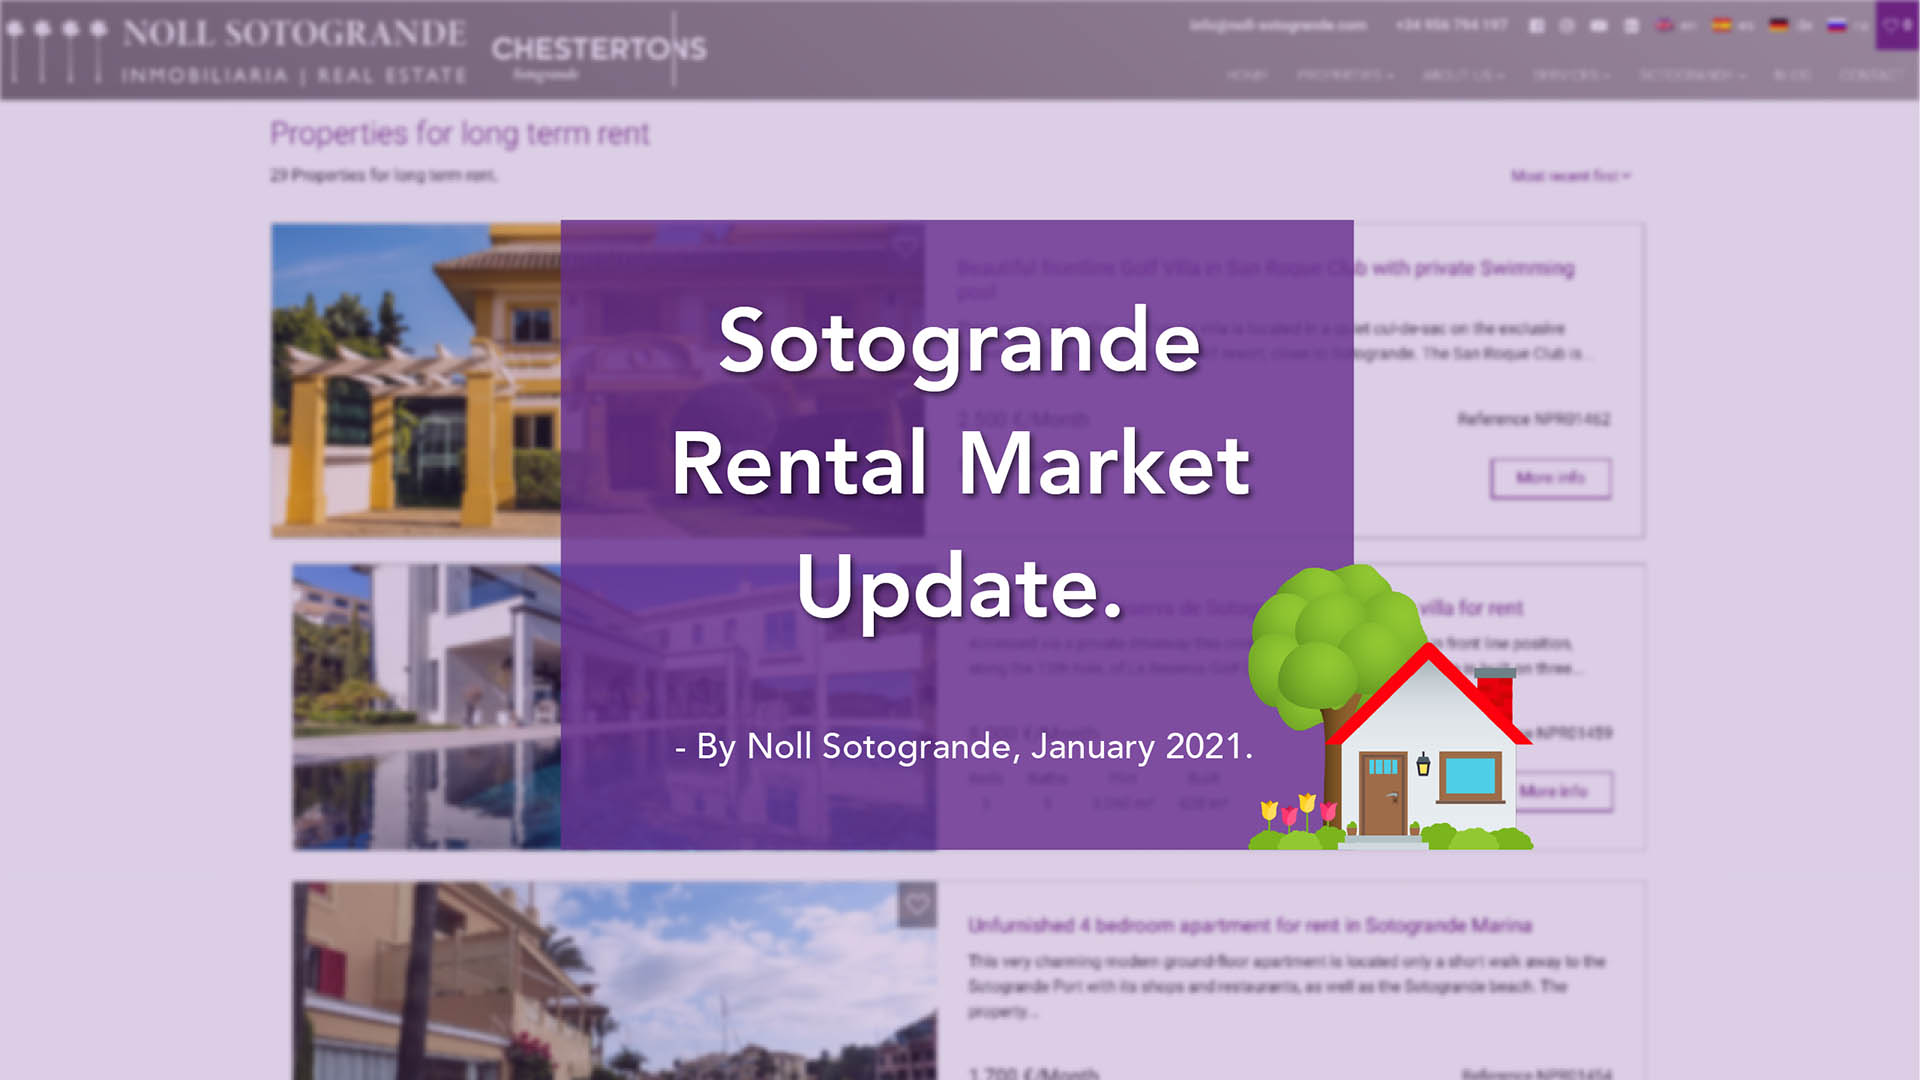 Noll Sotogrande reports a surprising increase in the rental market